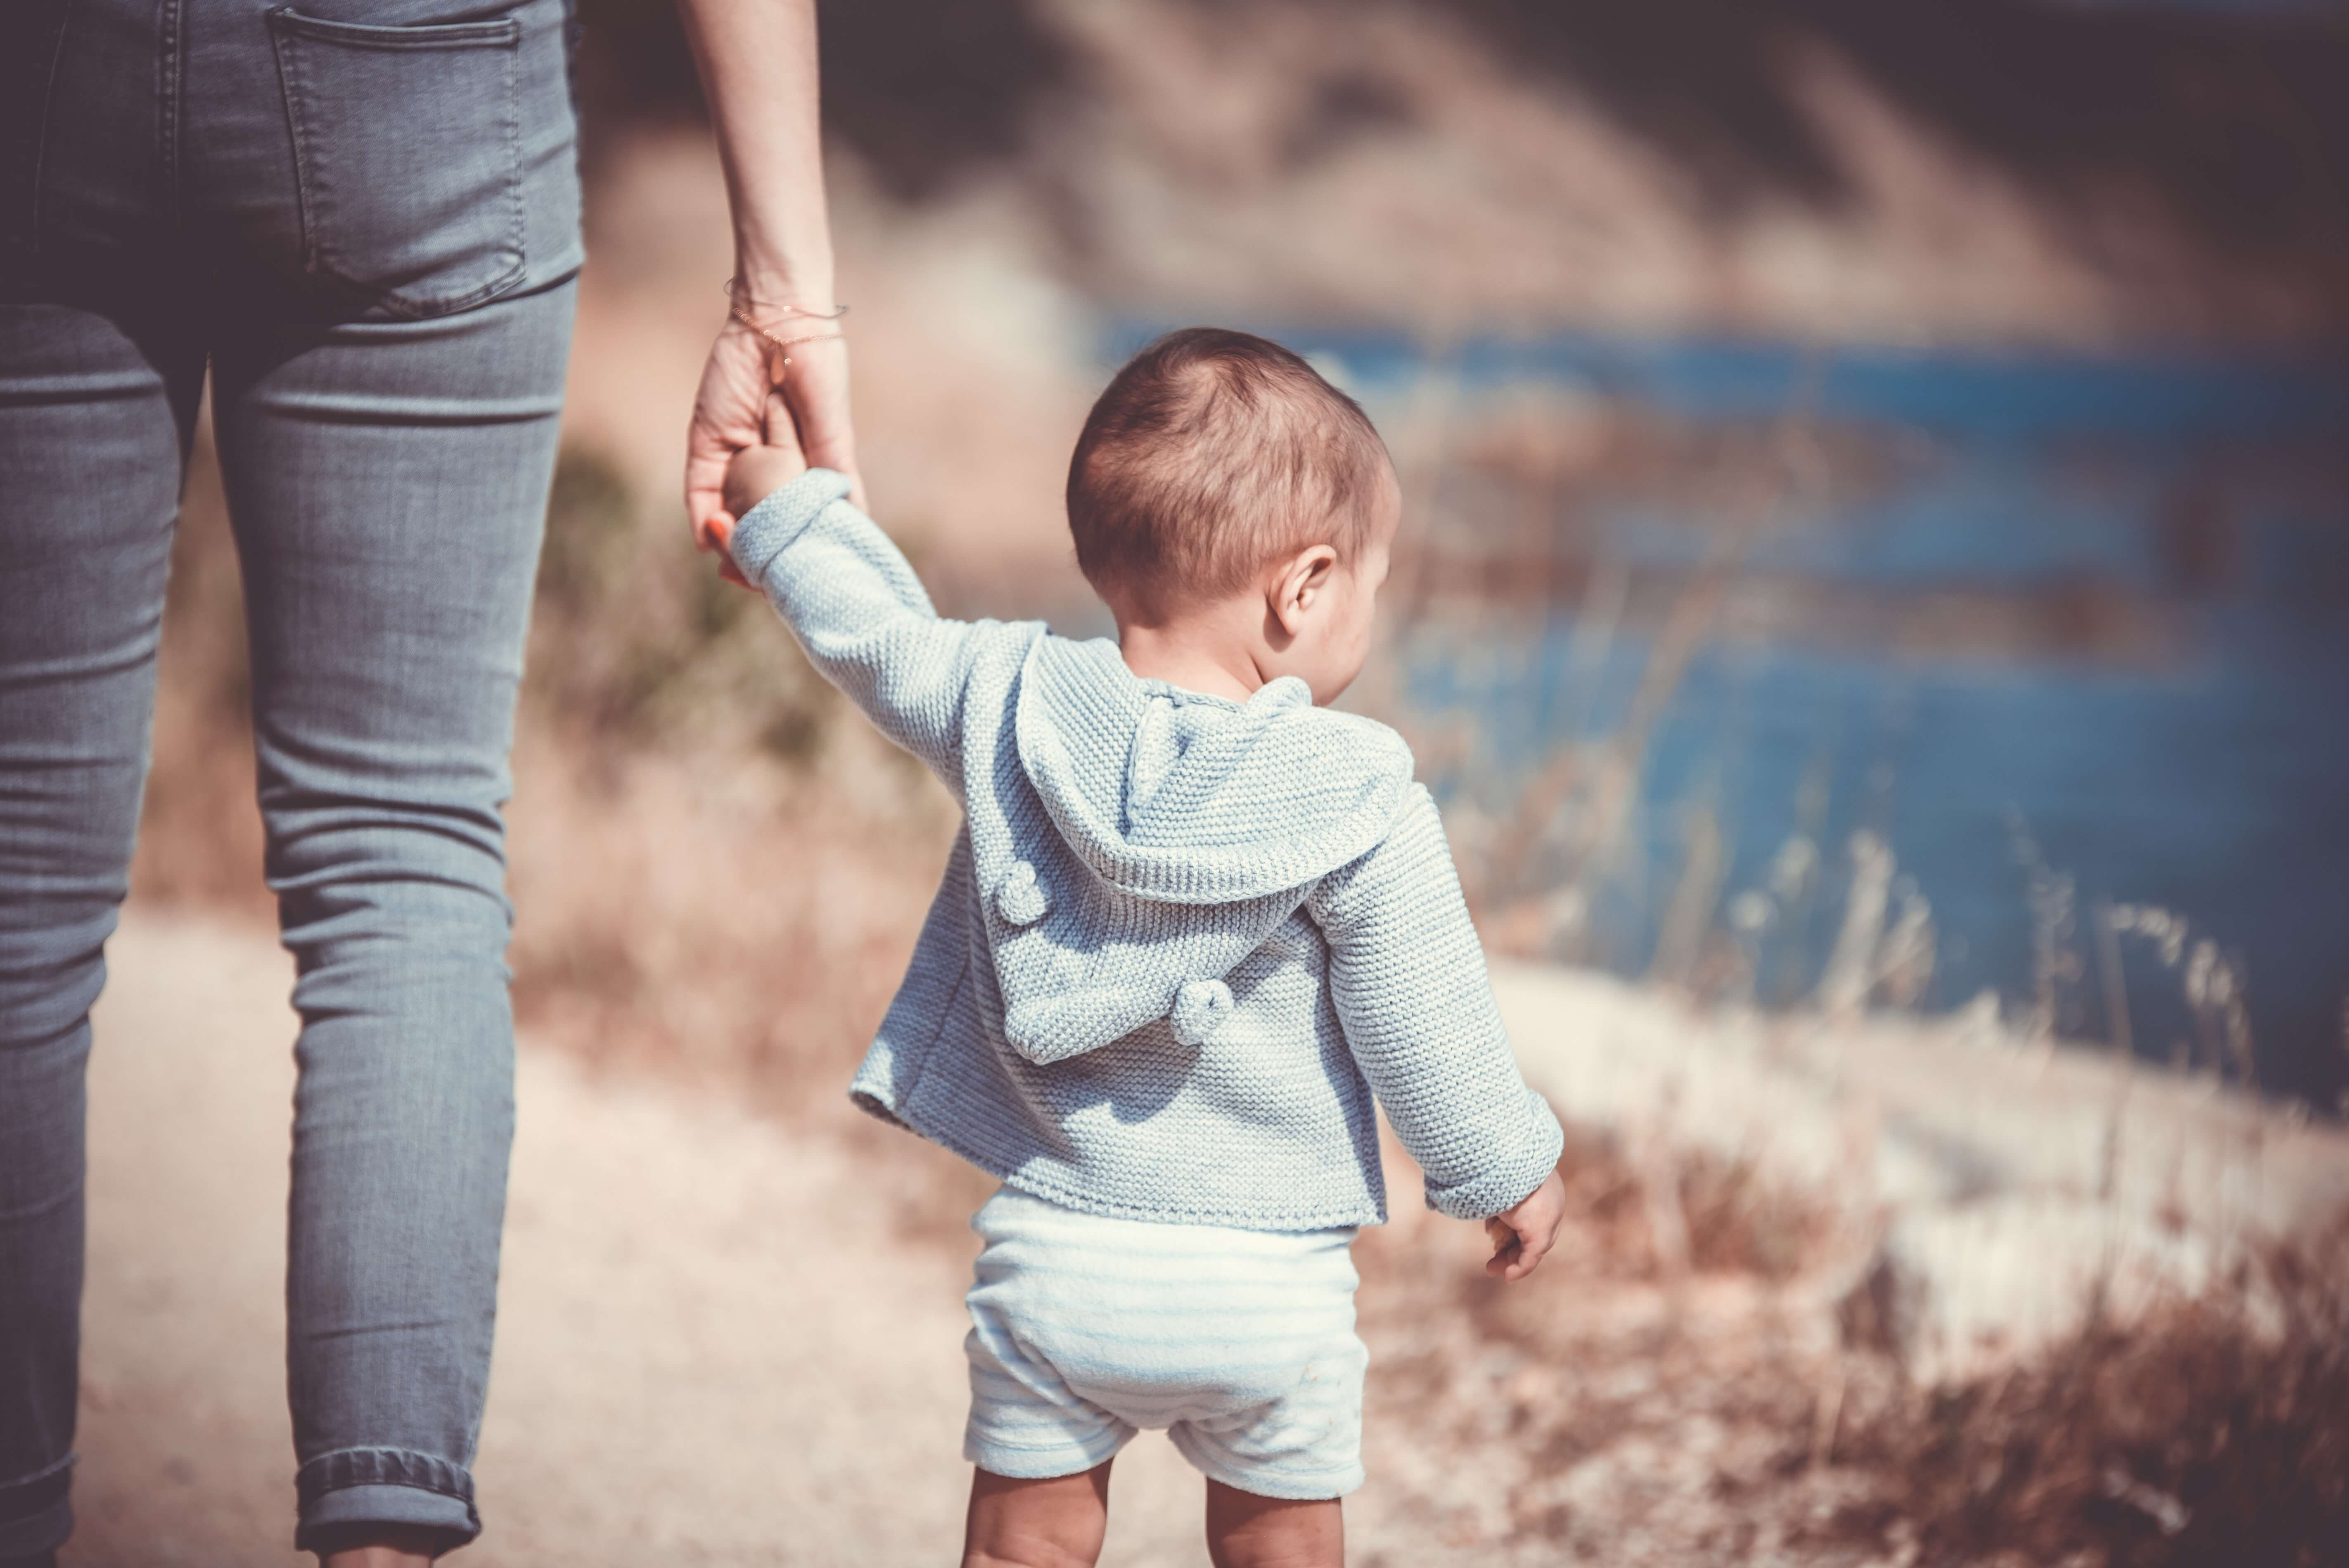 10 Good Reasons To Become A Dedicated Foster Parent